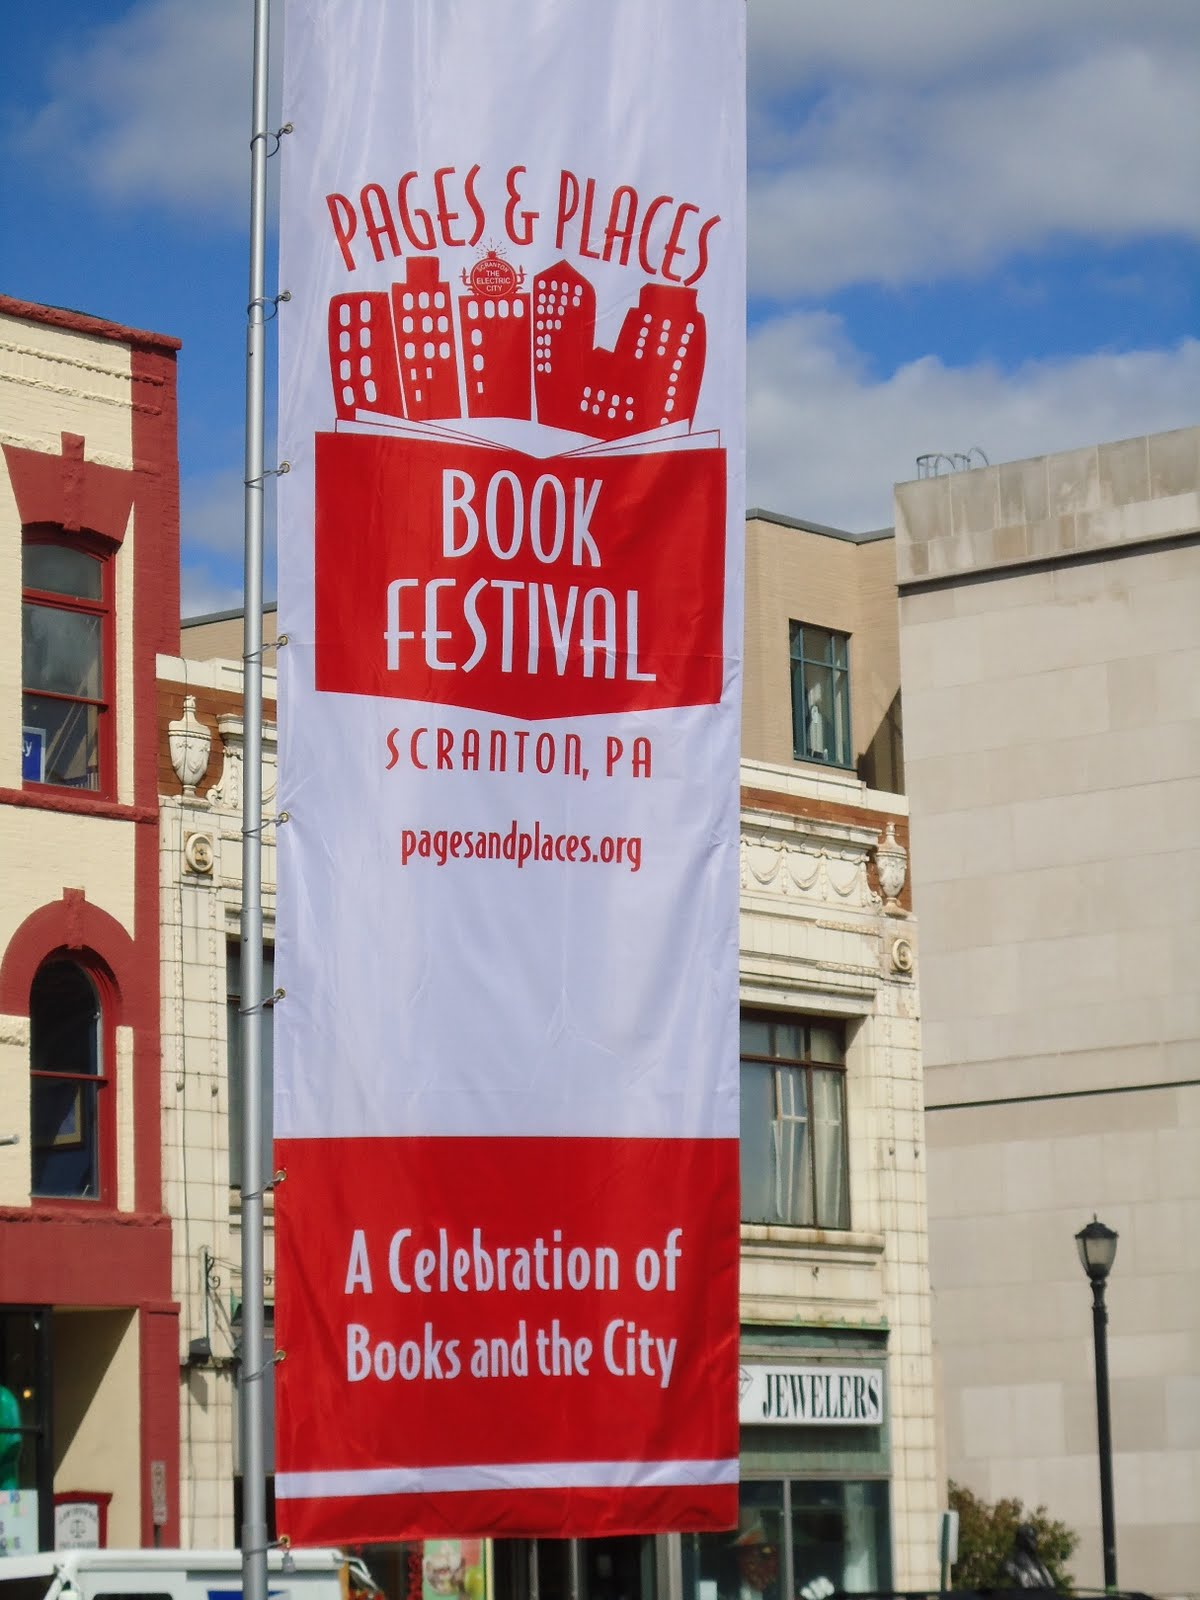 Pages places book festival scranton pa